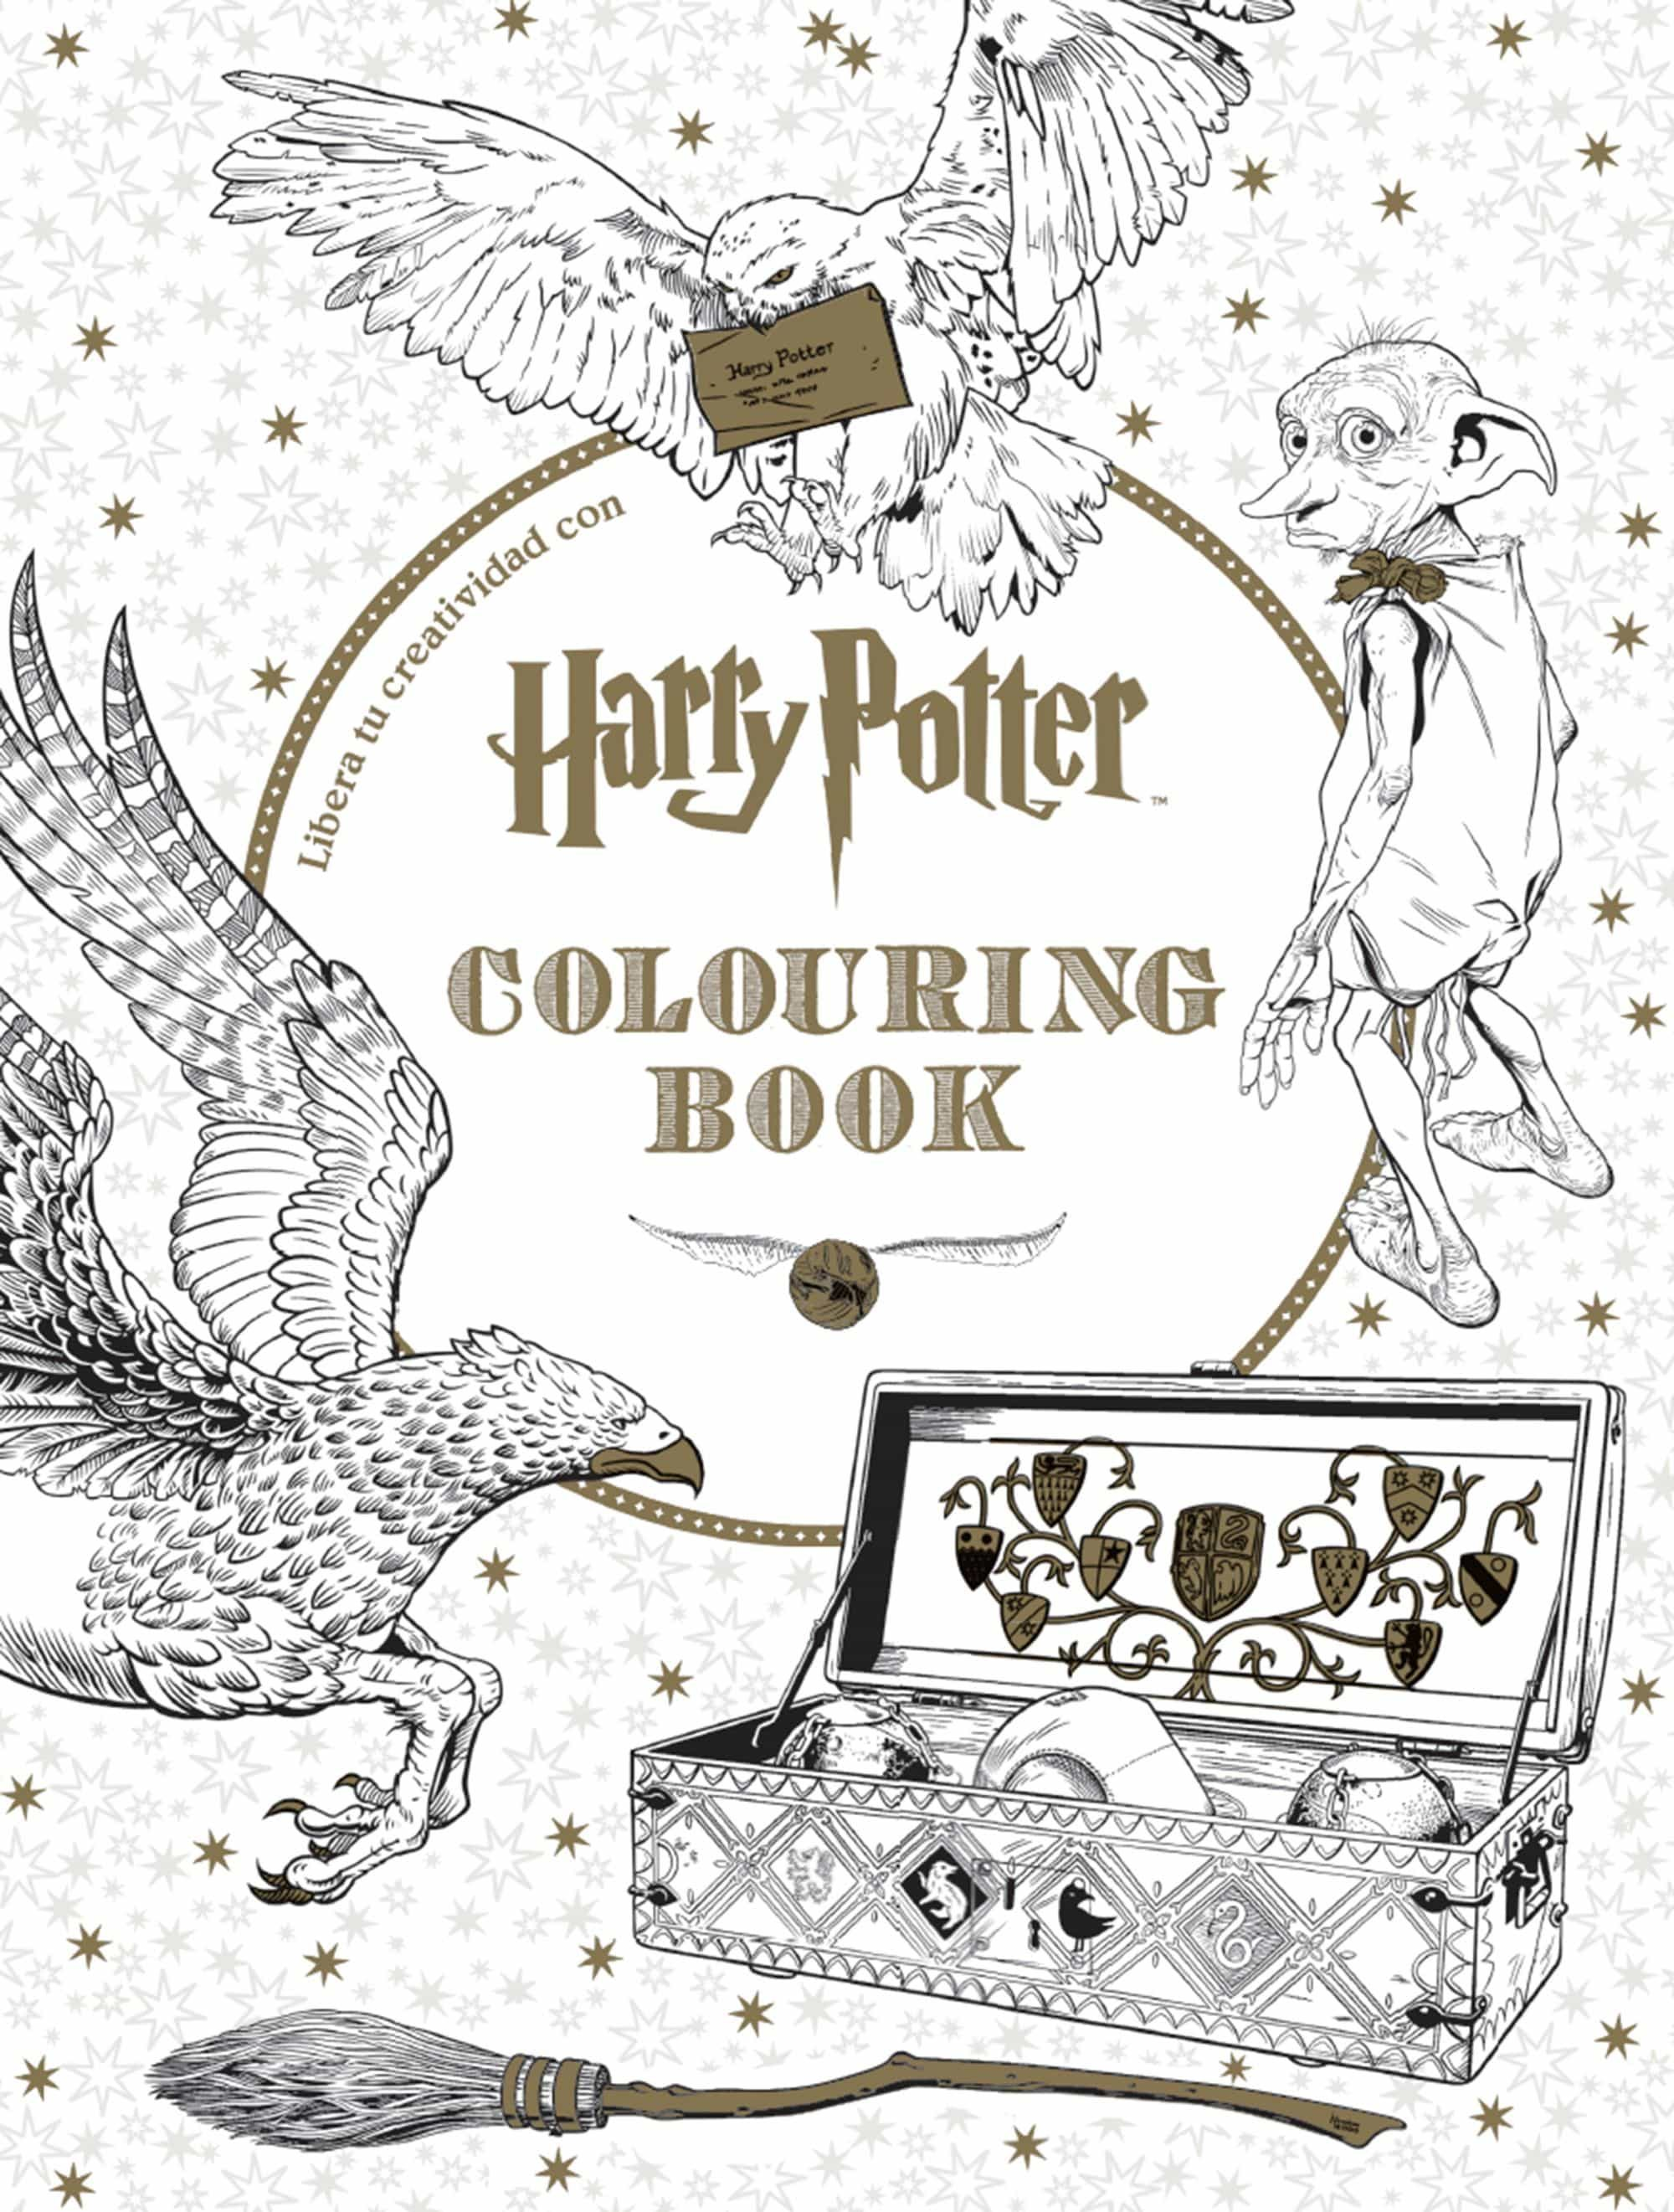 HARRY POTTER: COLOURING BOOK | VV.AA. | Comprar libro 9788448022129